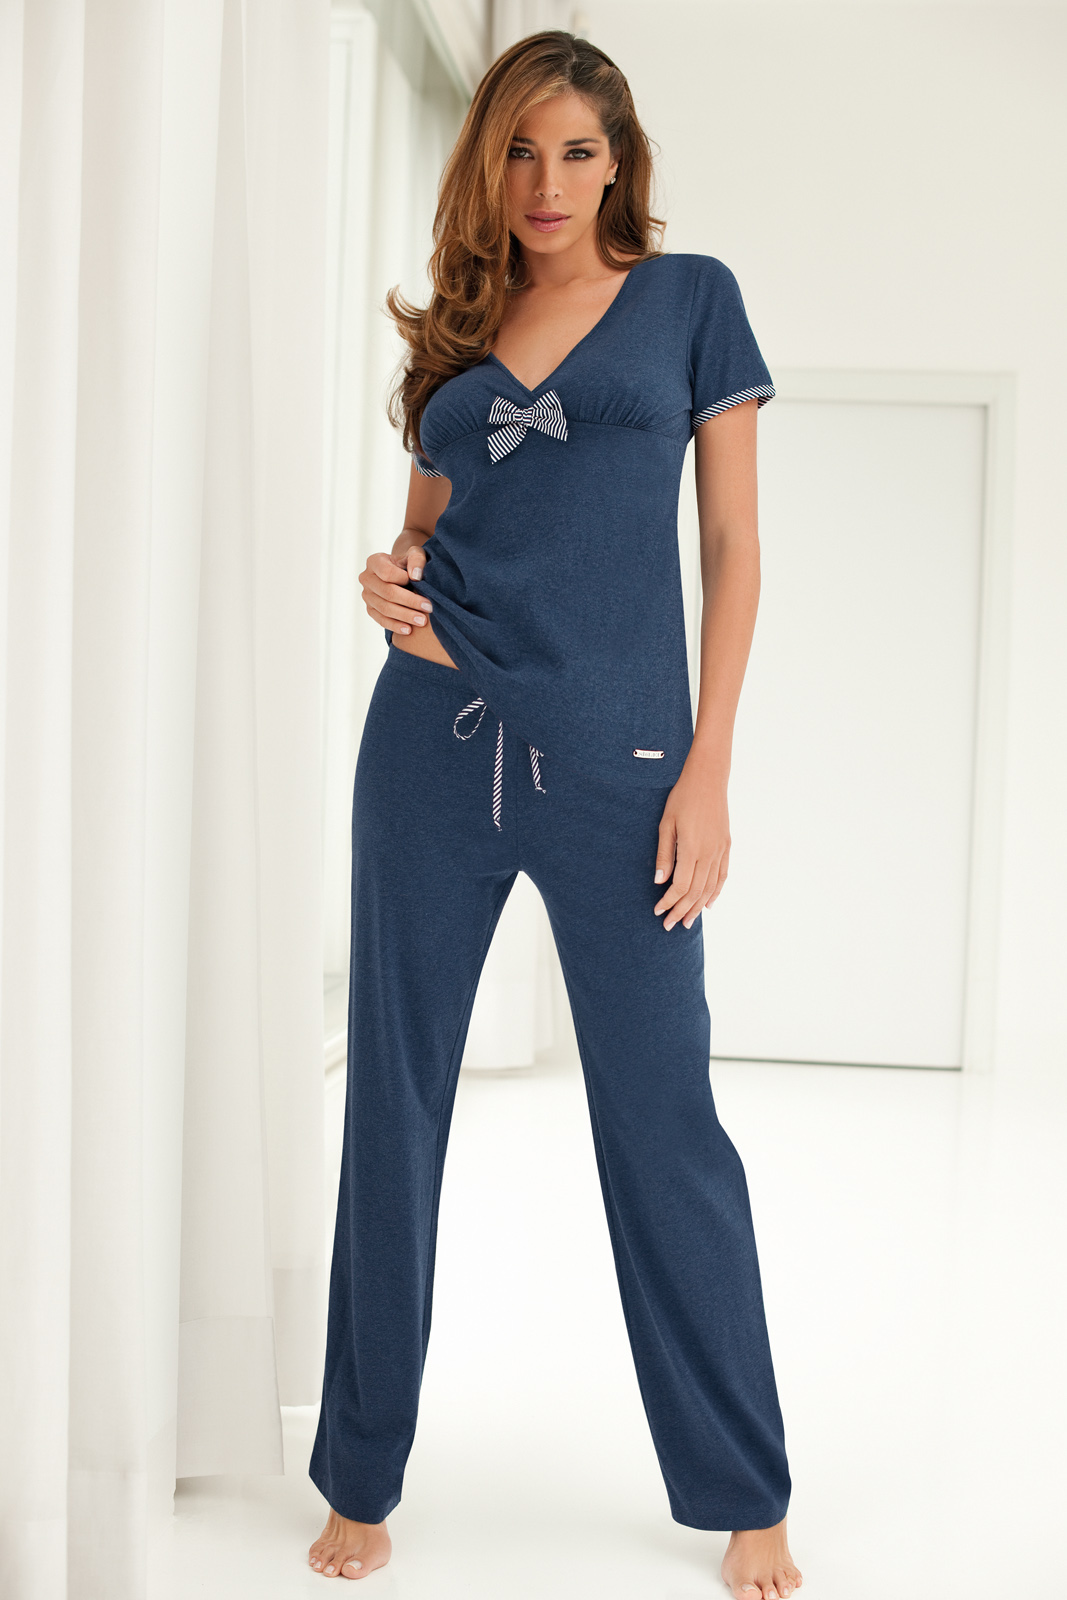 New Fashion 4 Women Sleepwear 2013